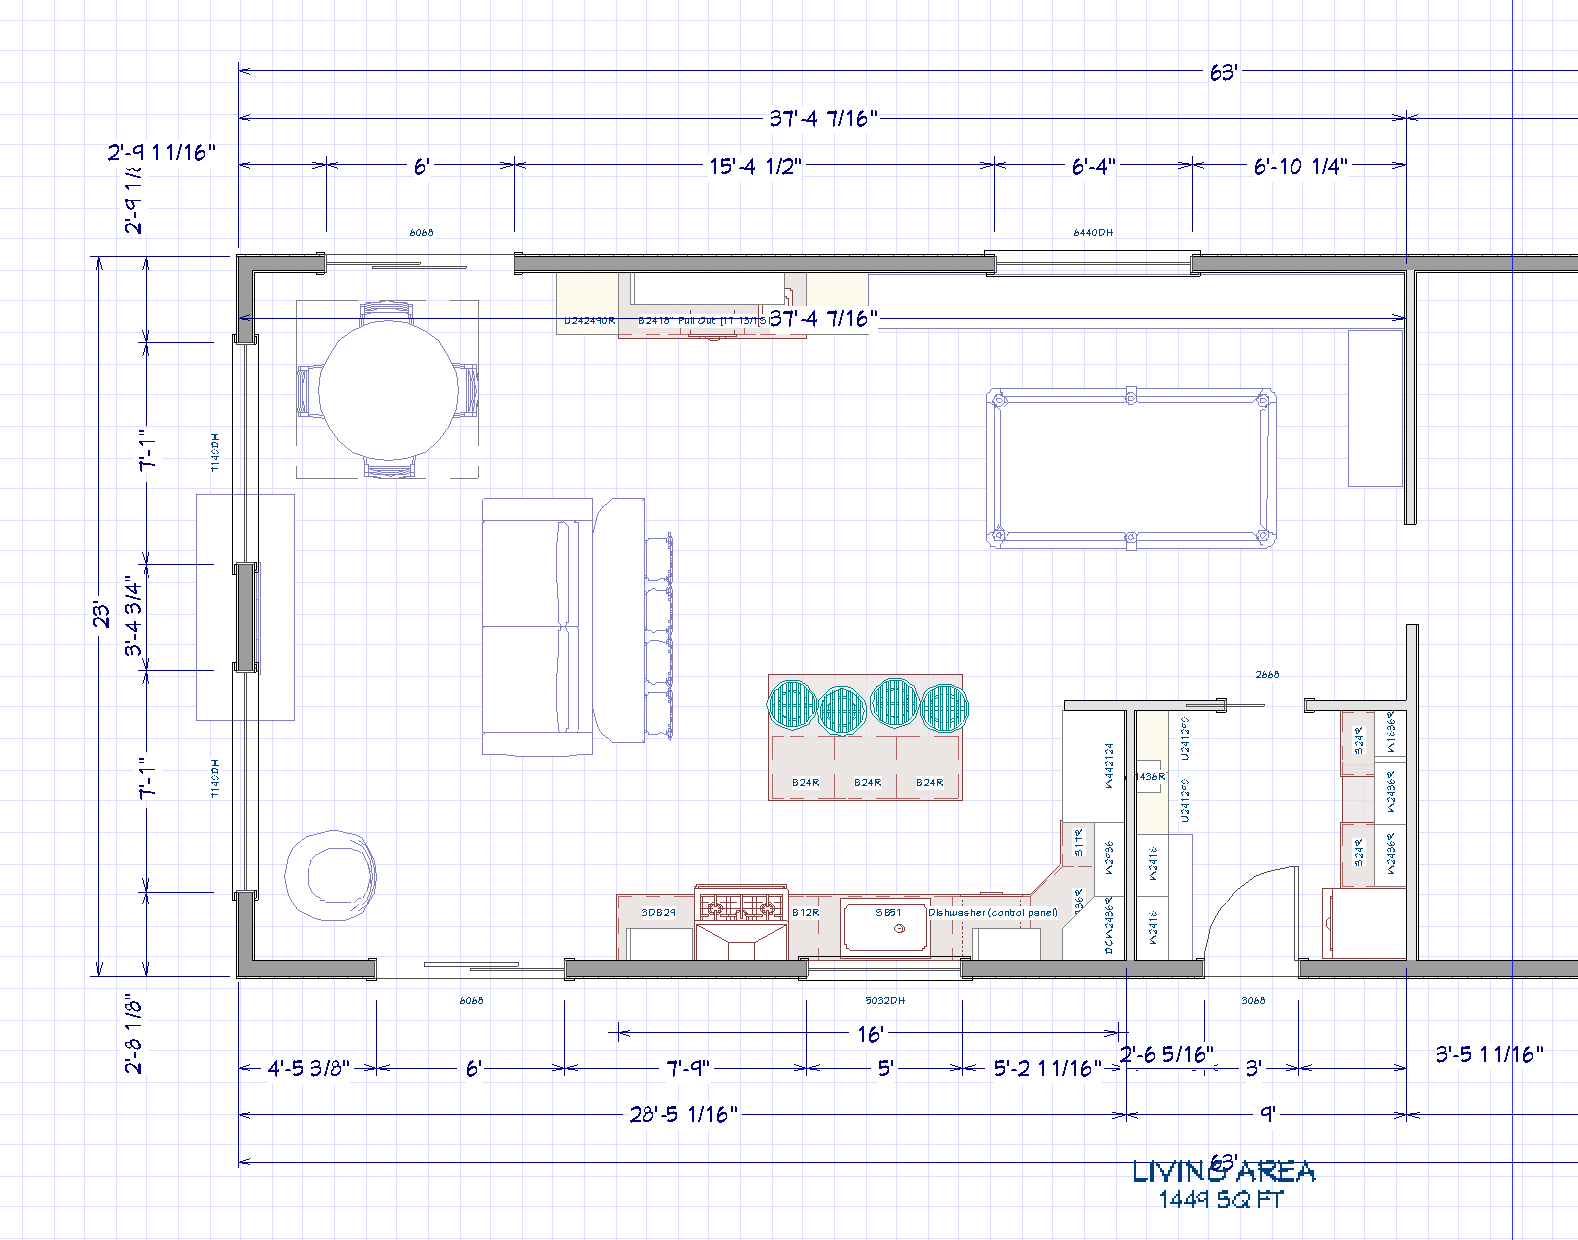 Bautista layout 9-21-18.png